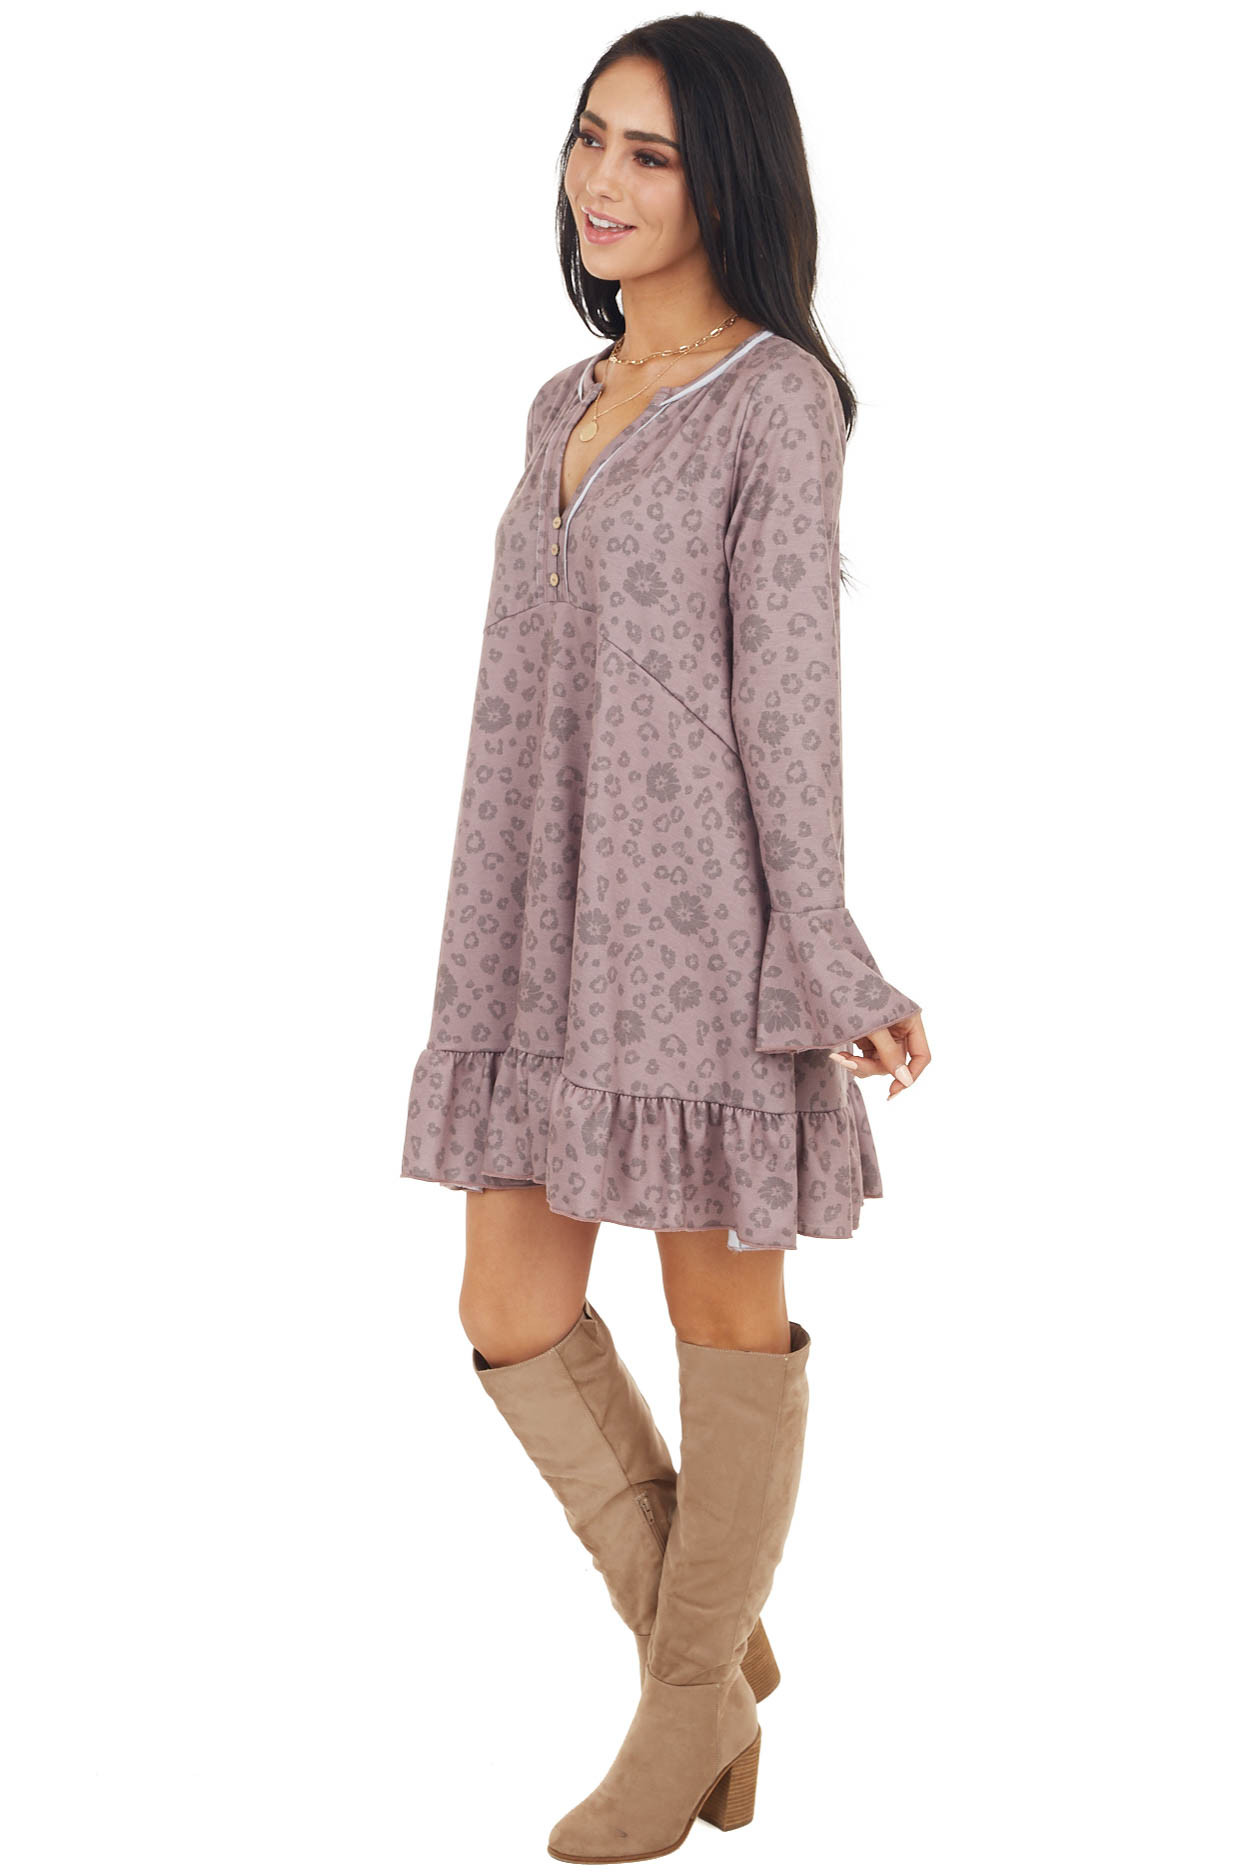 Dusty Rose Floral and Leopard Print Ruffle Babydoll Dress